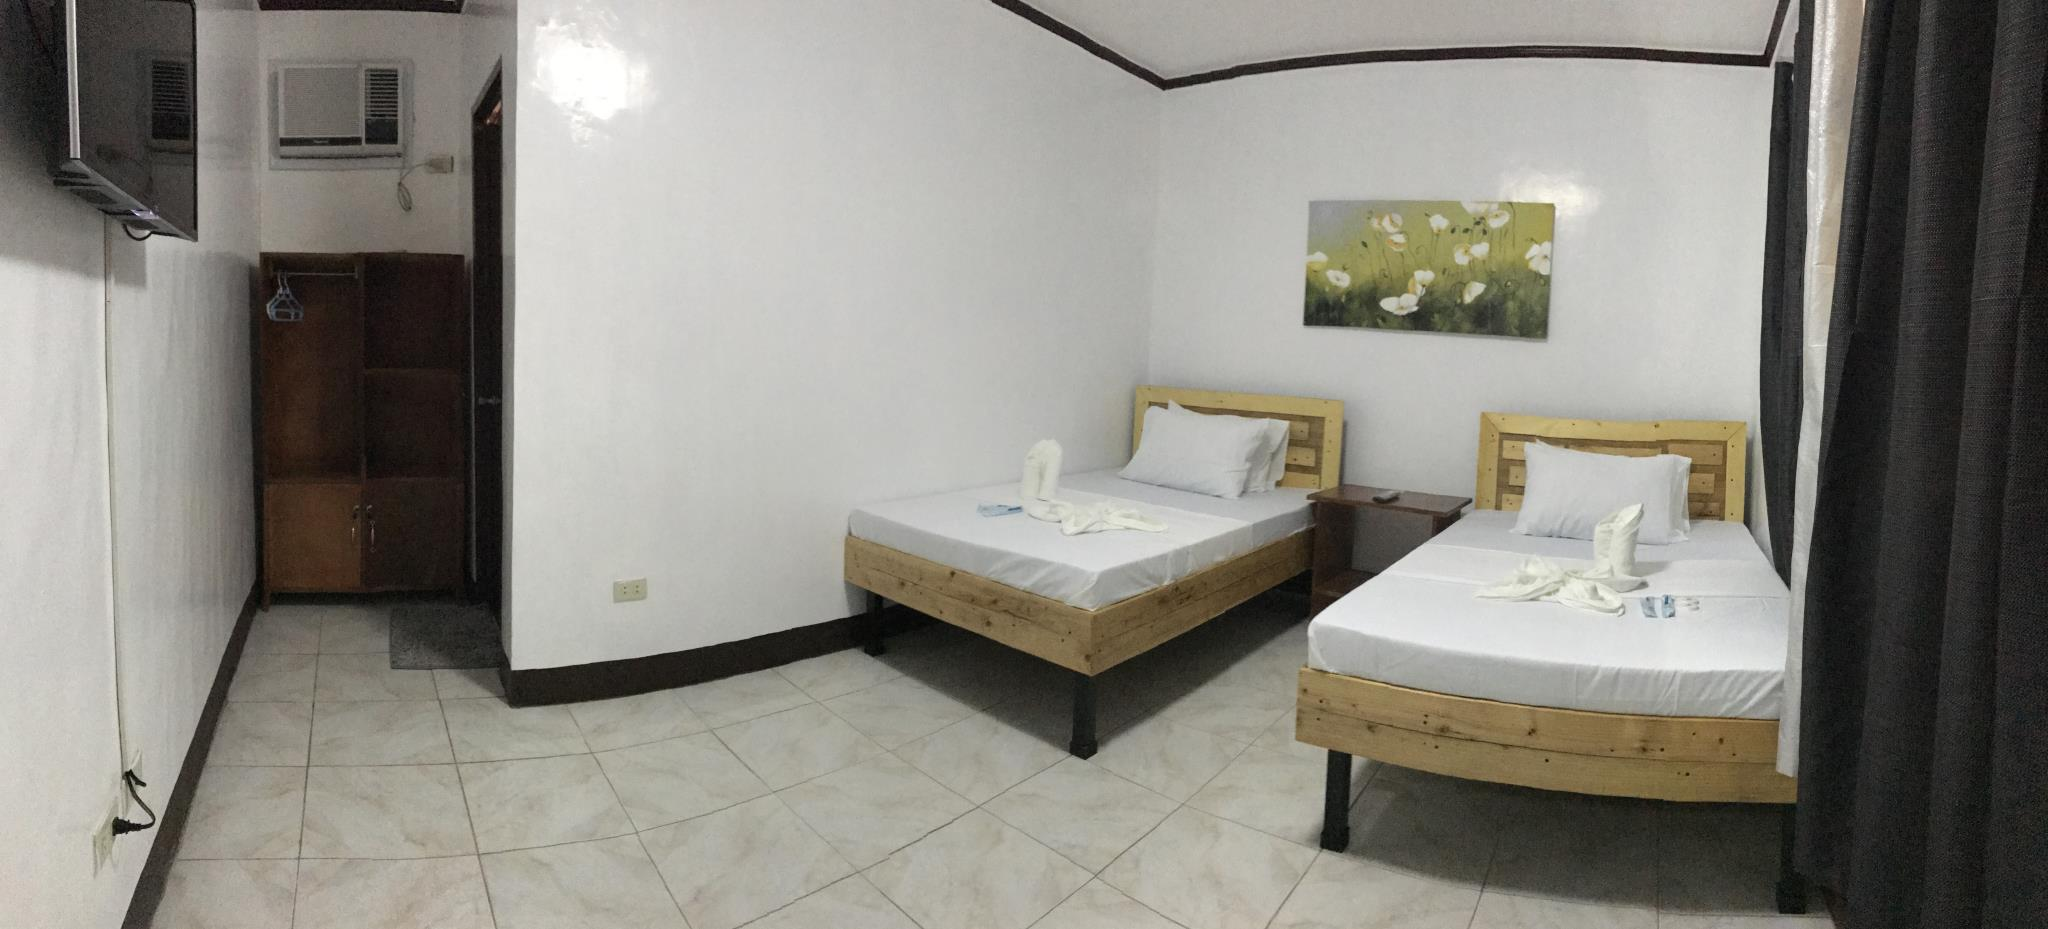 Family Room (2 Double Beds For 4 Persons)